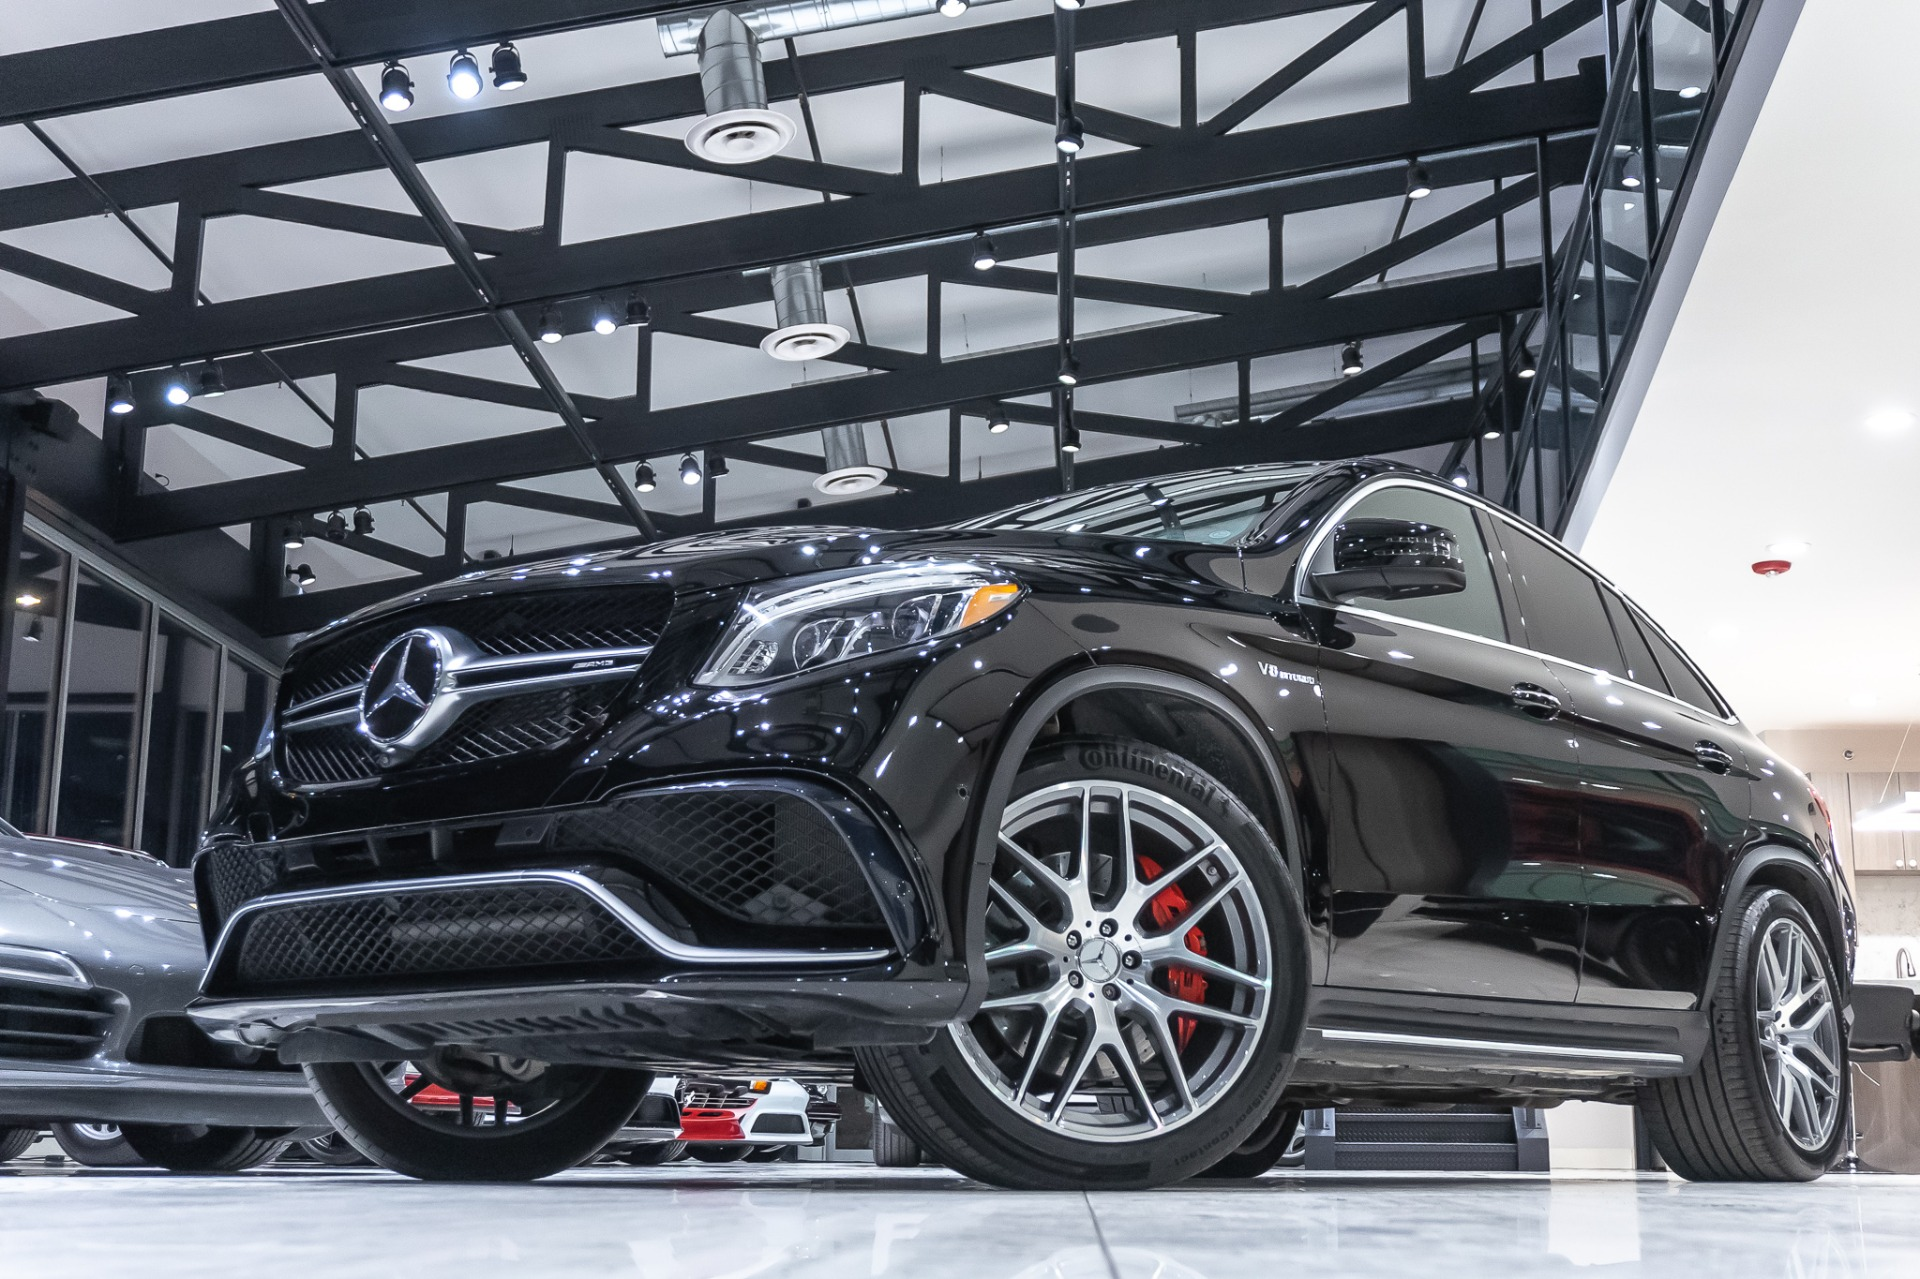 Used-2016-Mercedes-Benz-GLE63-AMG-S-4Matic-Coupe-MSRP-116K-PERFORMANCE-EXHAUST-DRIVER-ASSISTANCE